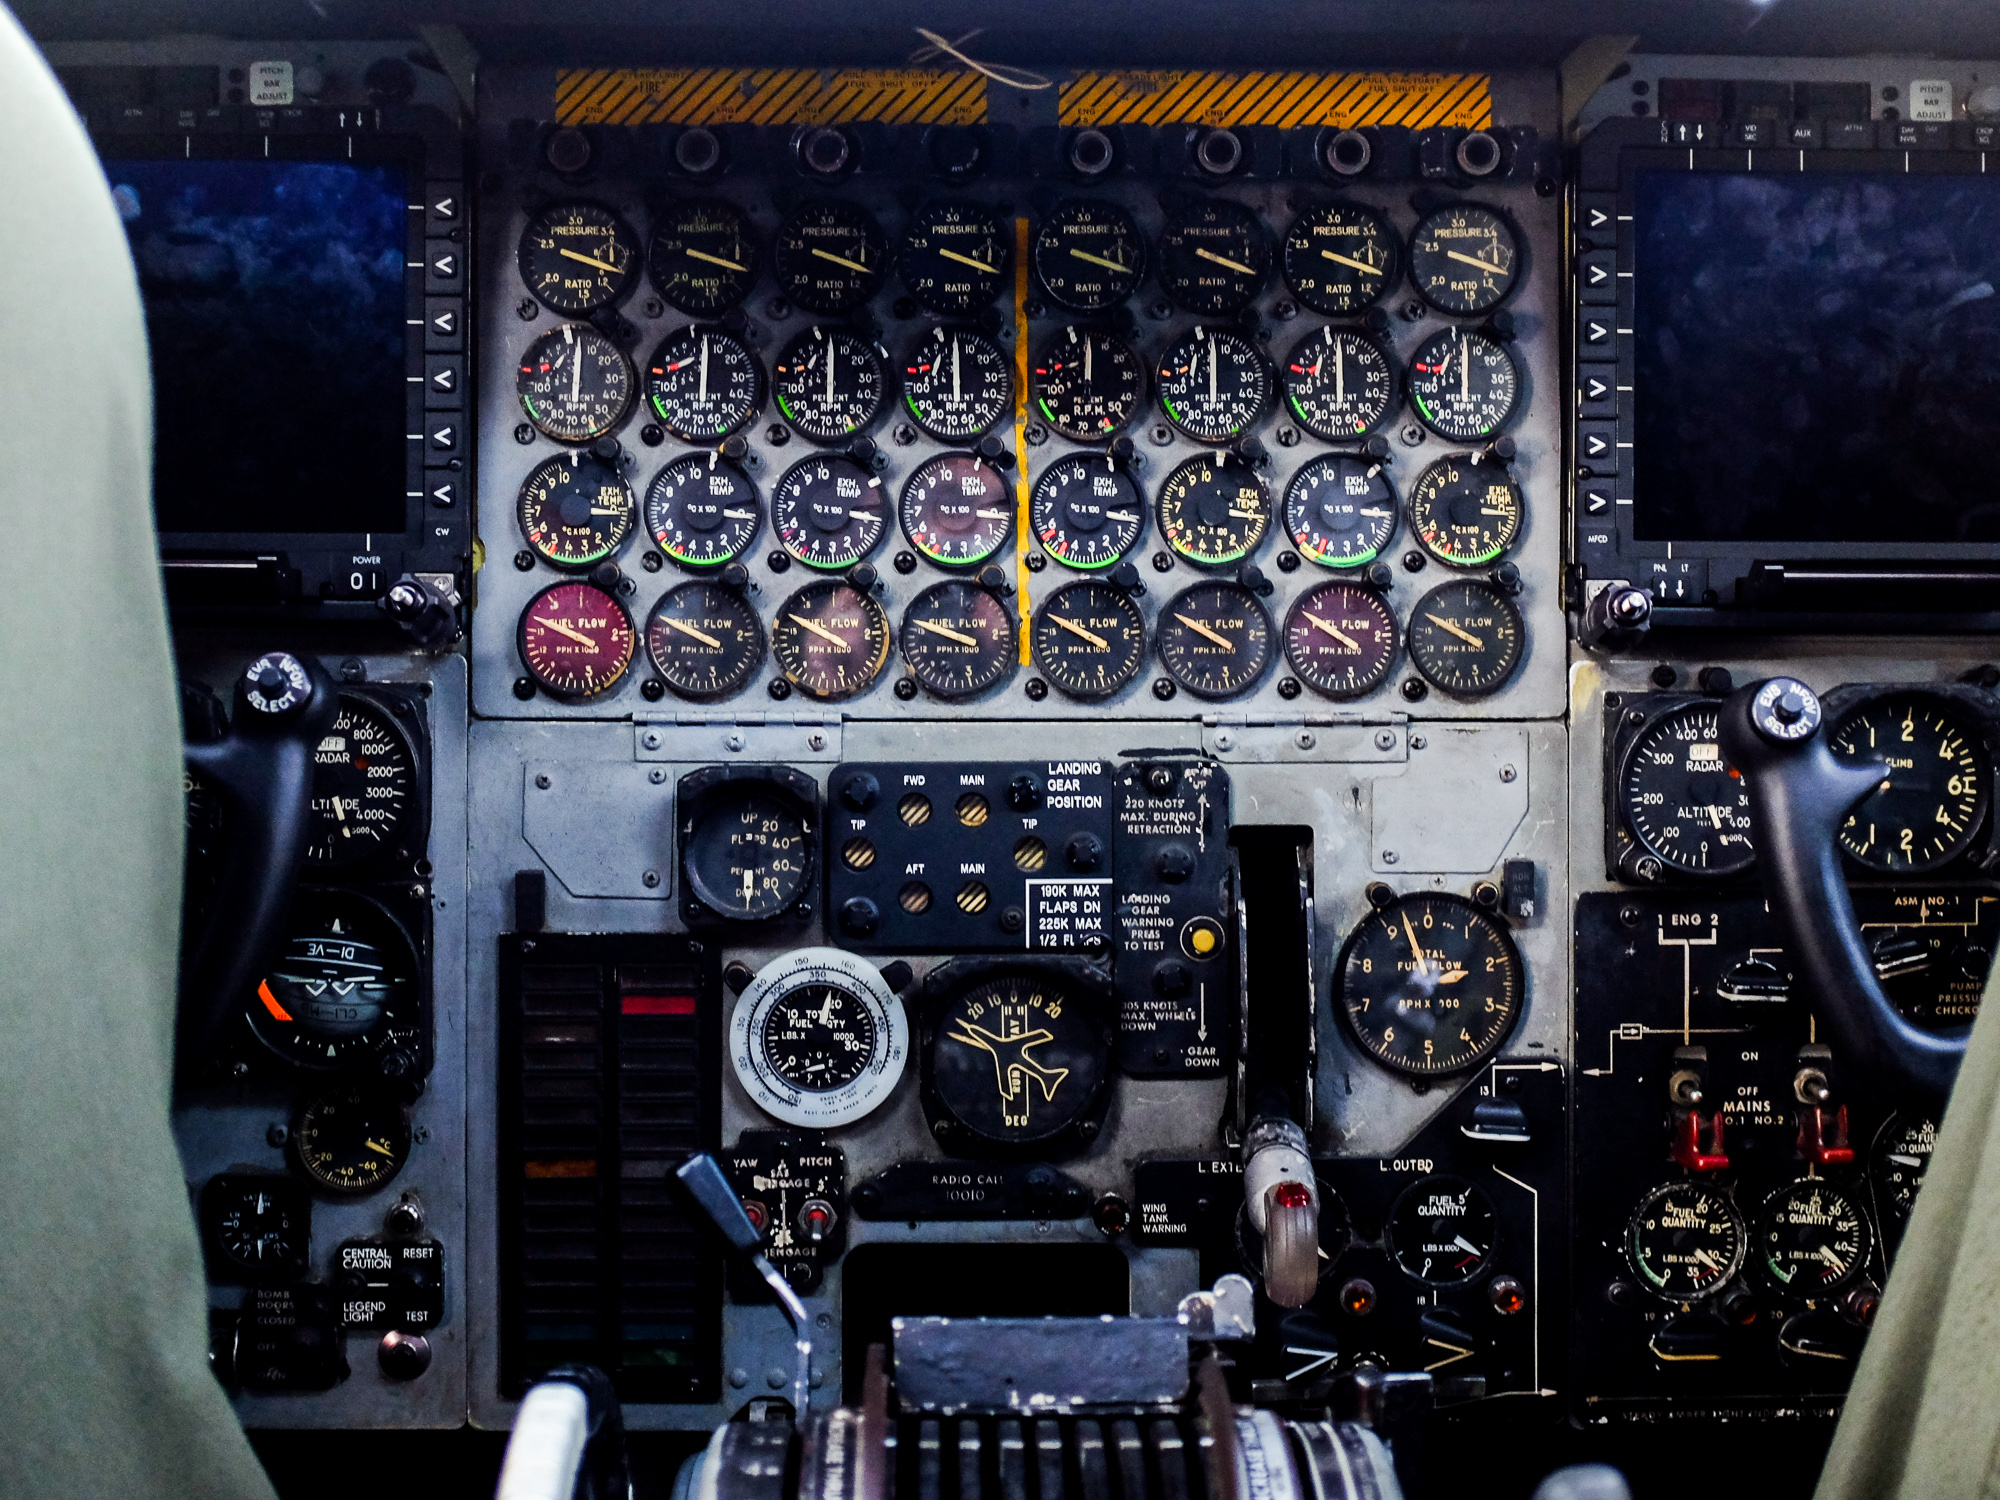 Gallery: From hatch to dials, a closer look at a B-52 bomber